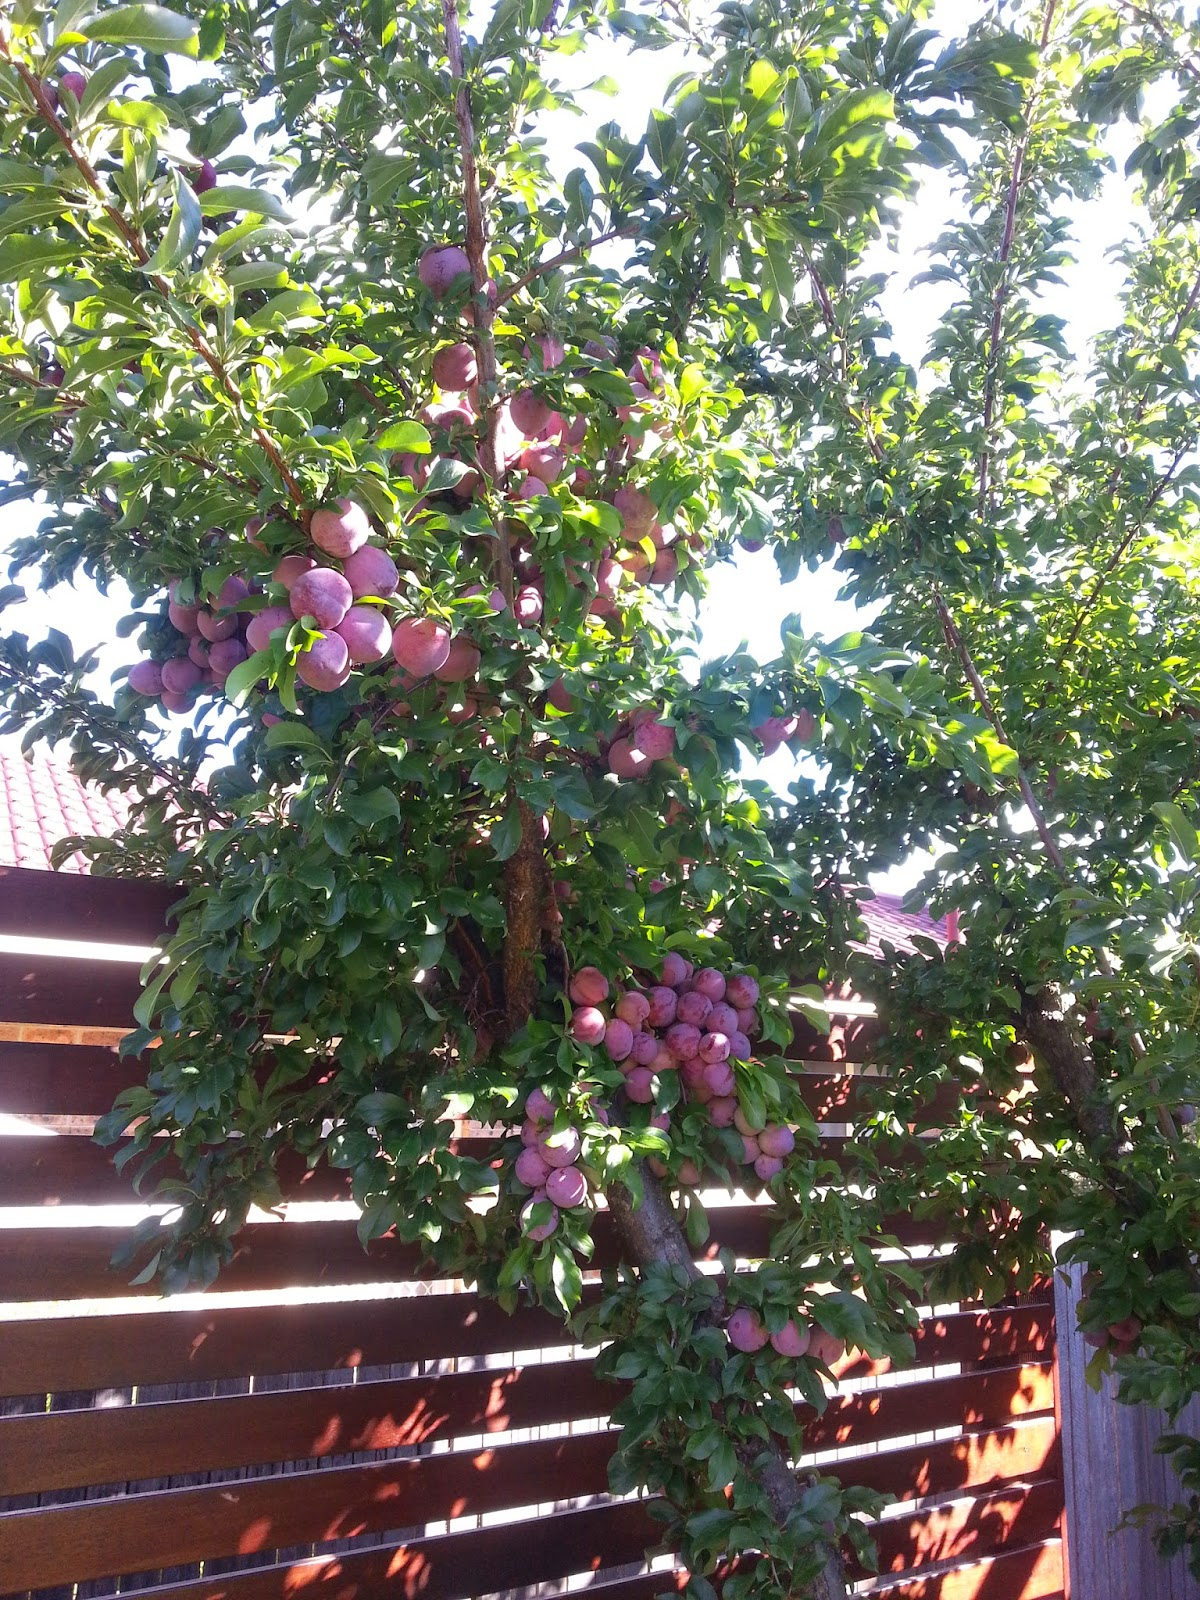 Time to cook the plums